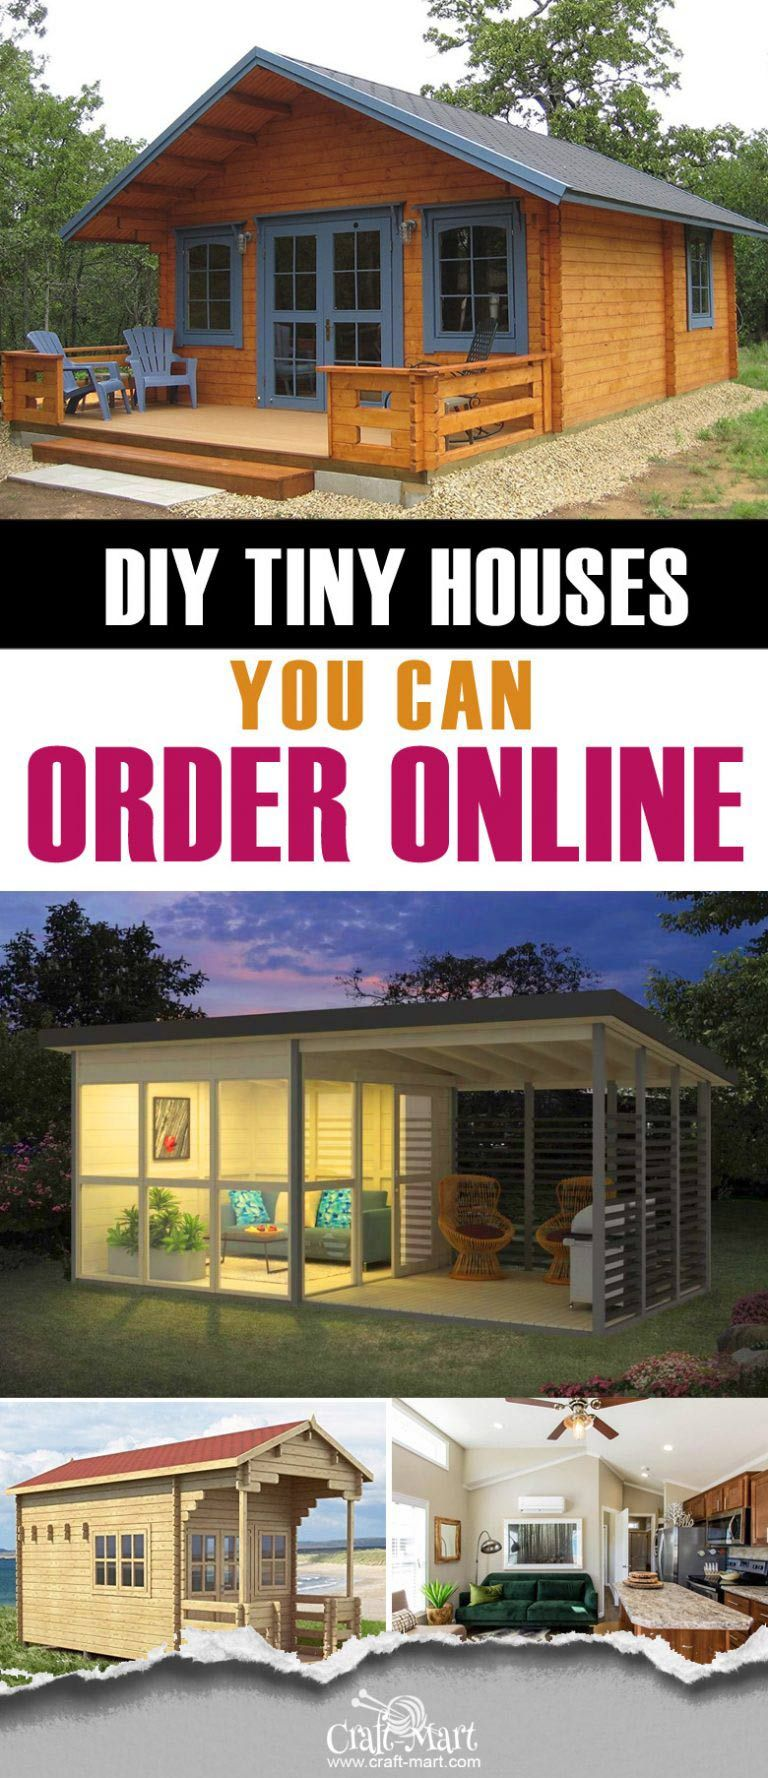 Prefab Tiny Houses You Can Order Online Right Now | Dream